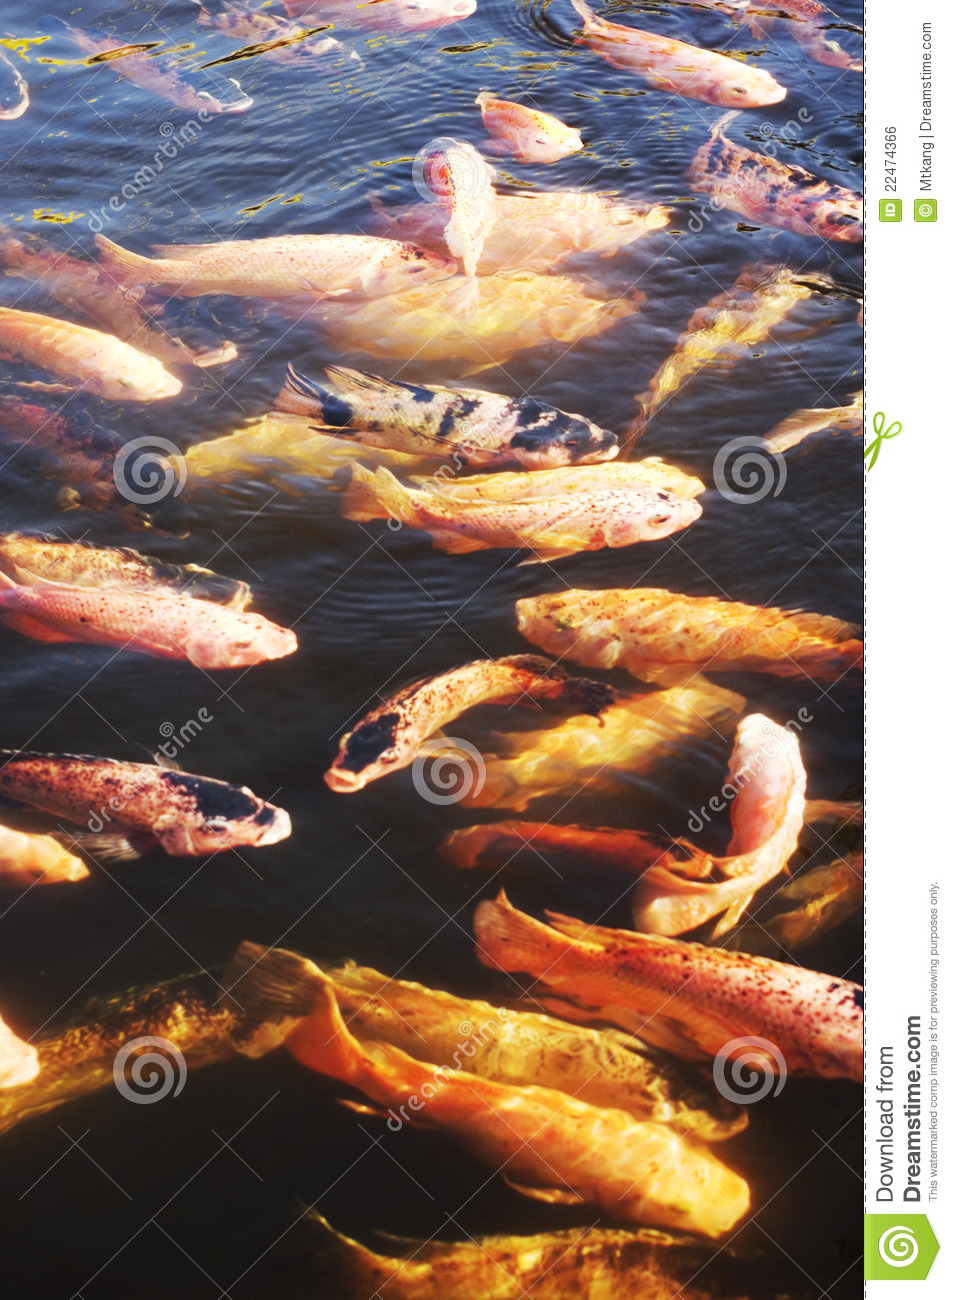 Koi fish in pool royalty free stock image image 22474366 for Koi fish swimming pool